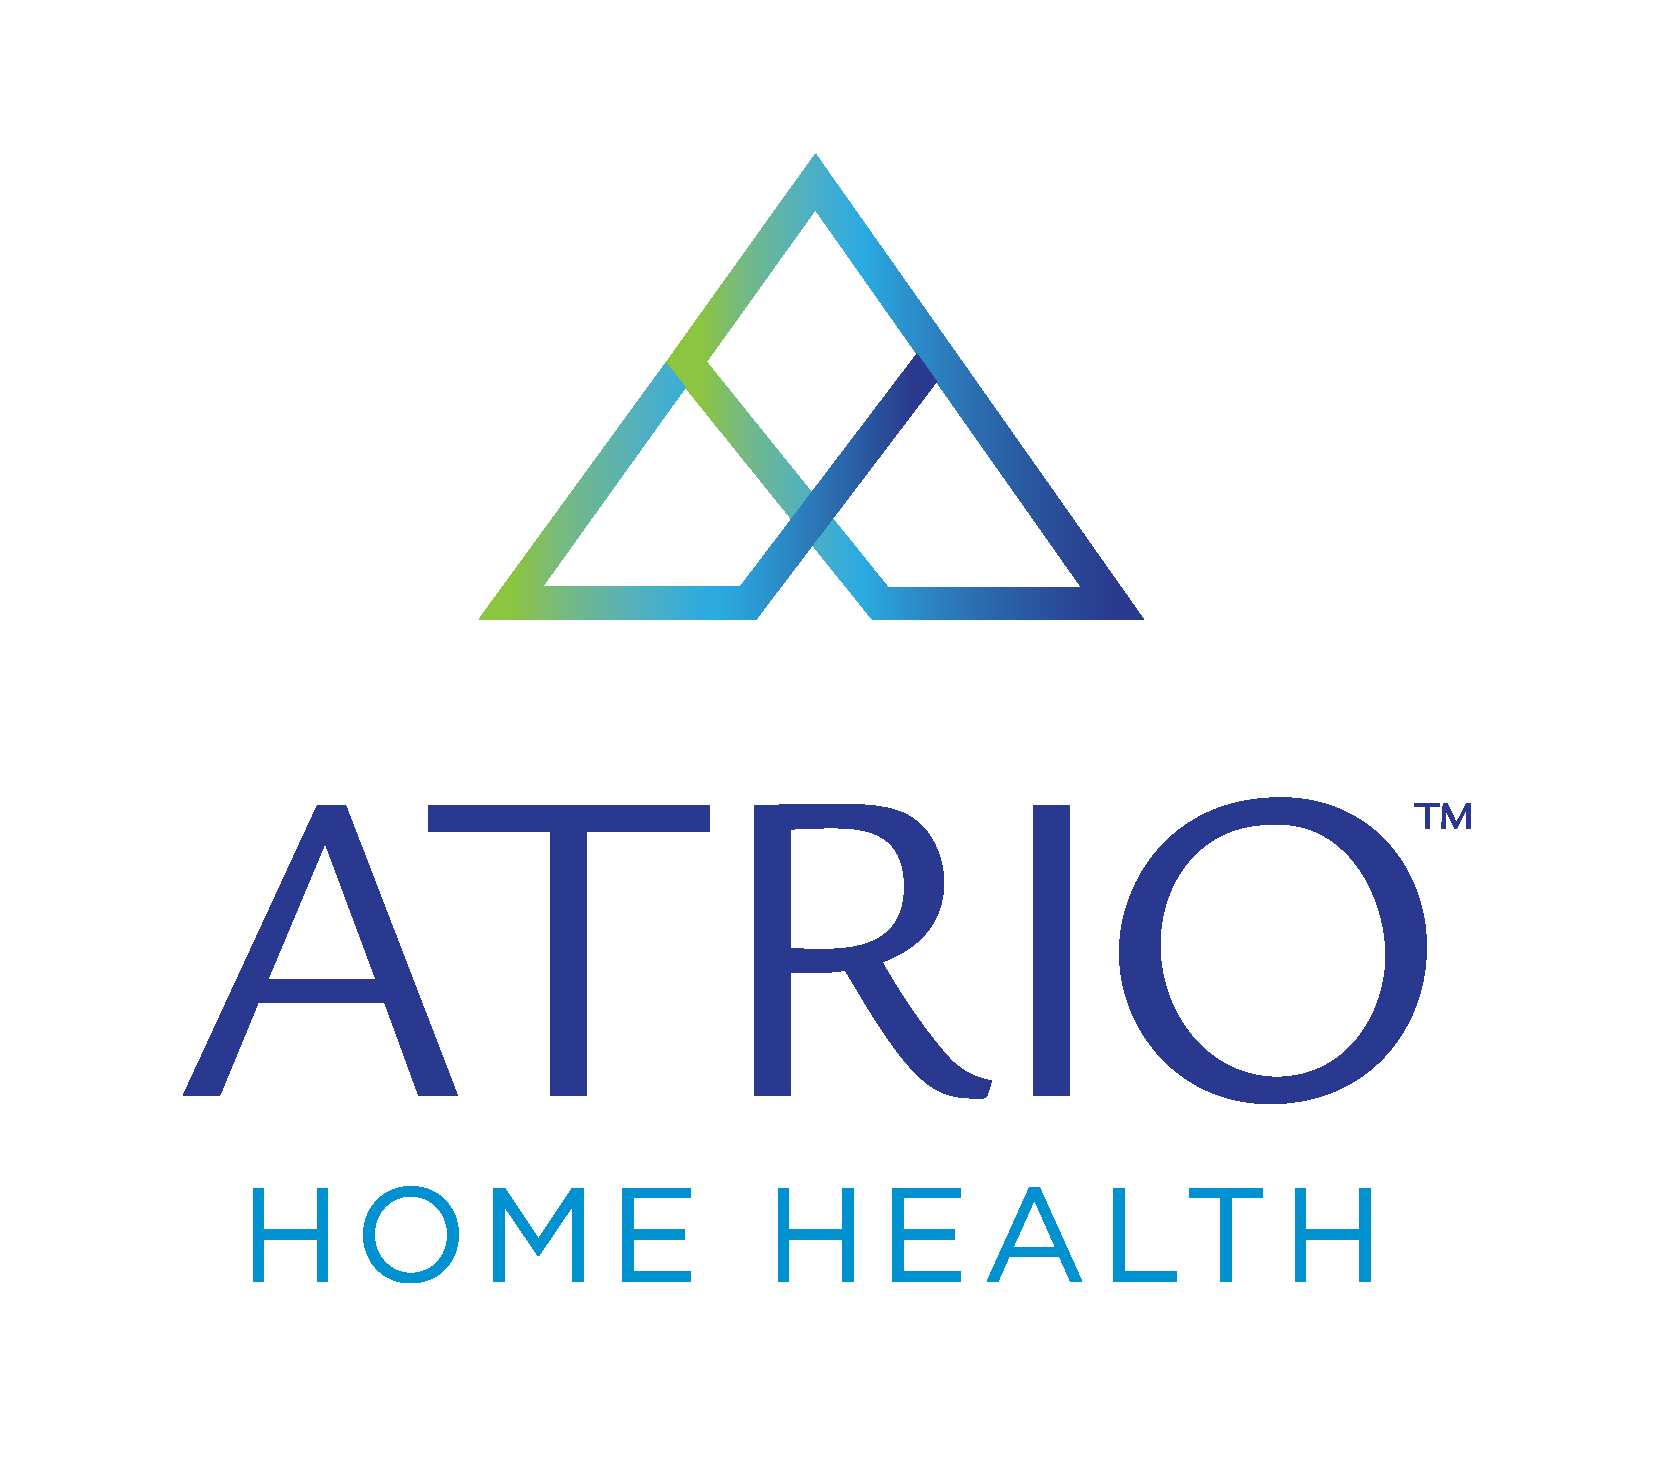 Atrio_HomeHealth.png